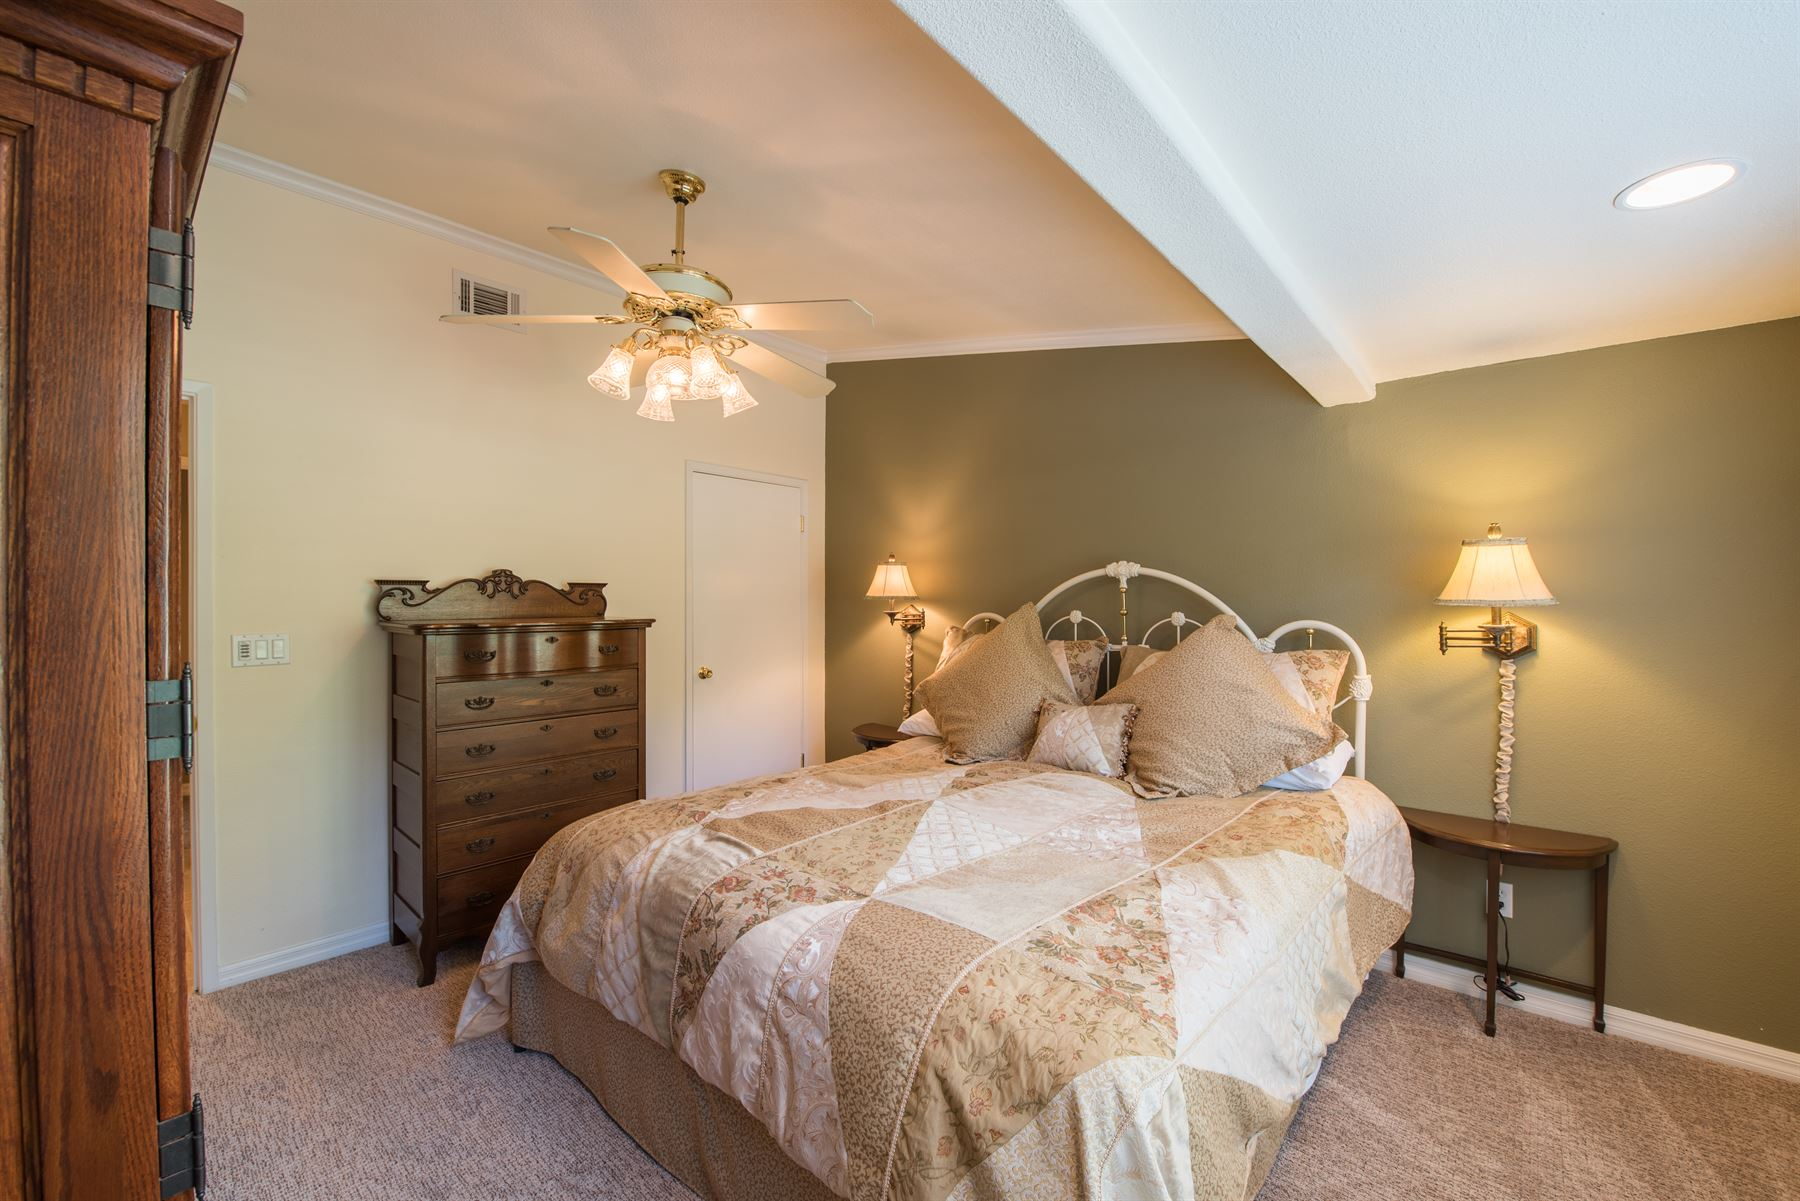 Golfer's Getaway - Interior - Bedroom with large bed that has tan and peach checkered linens and a ceiling fan